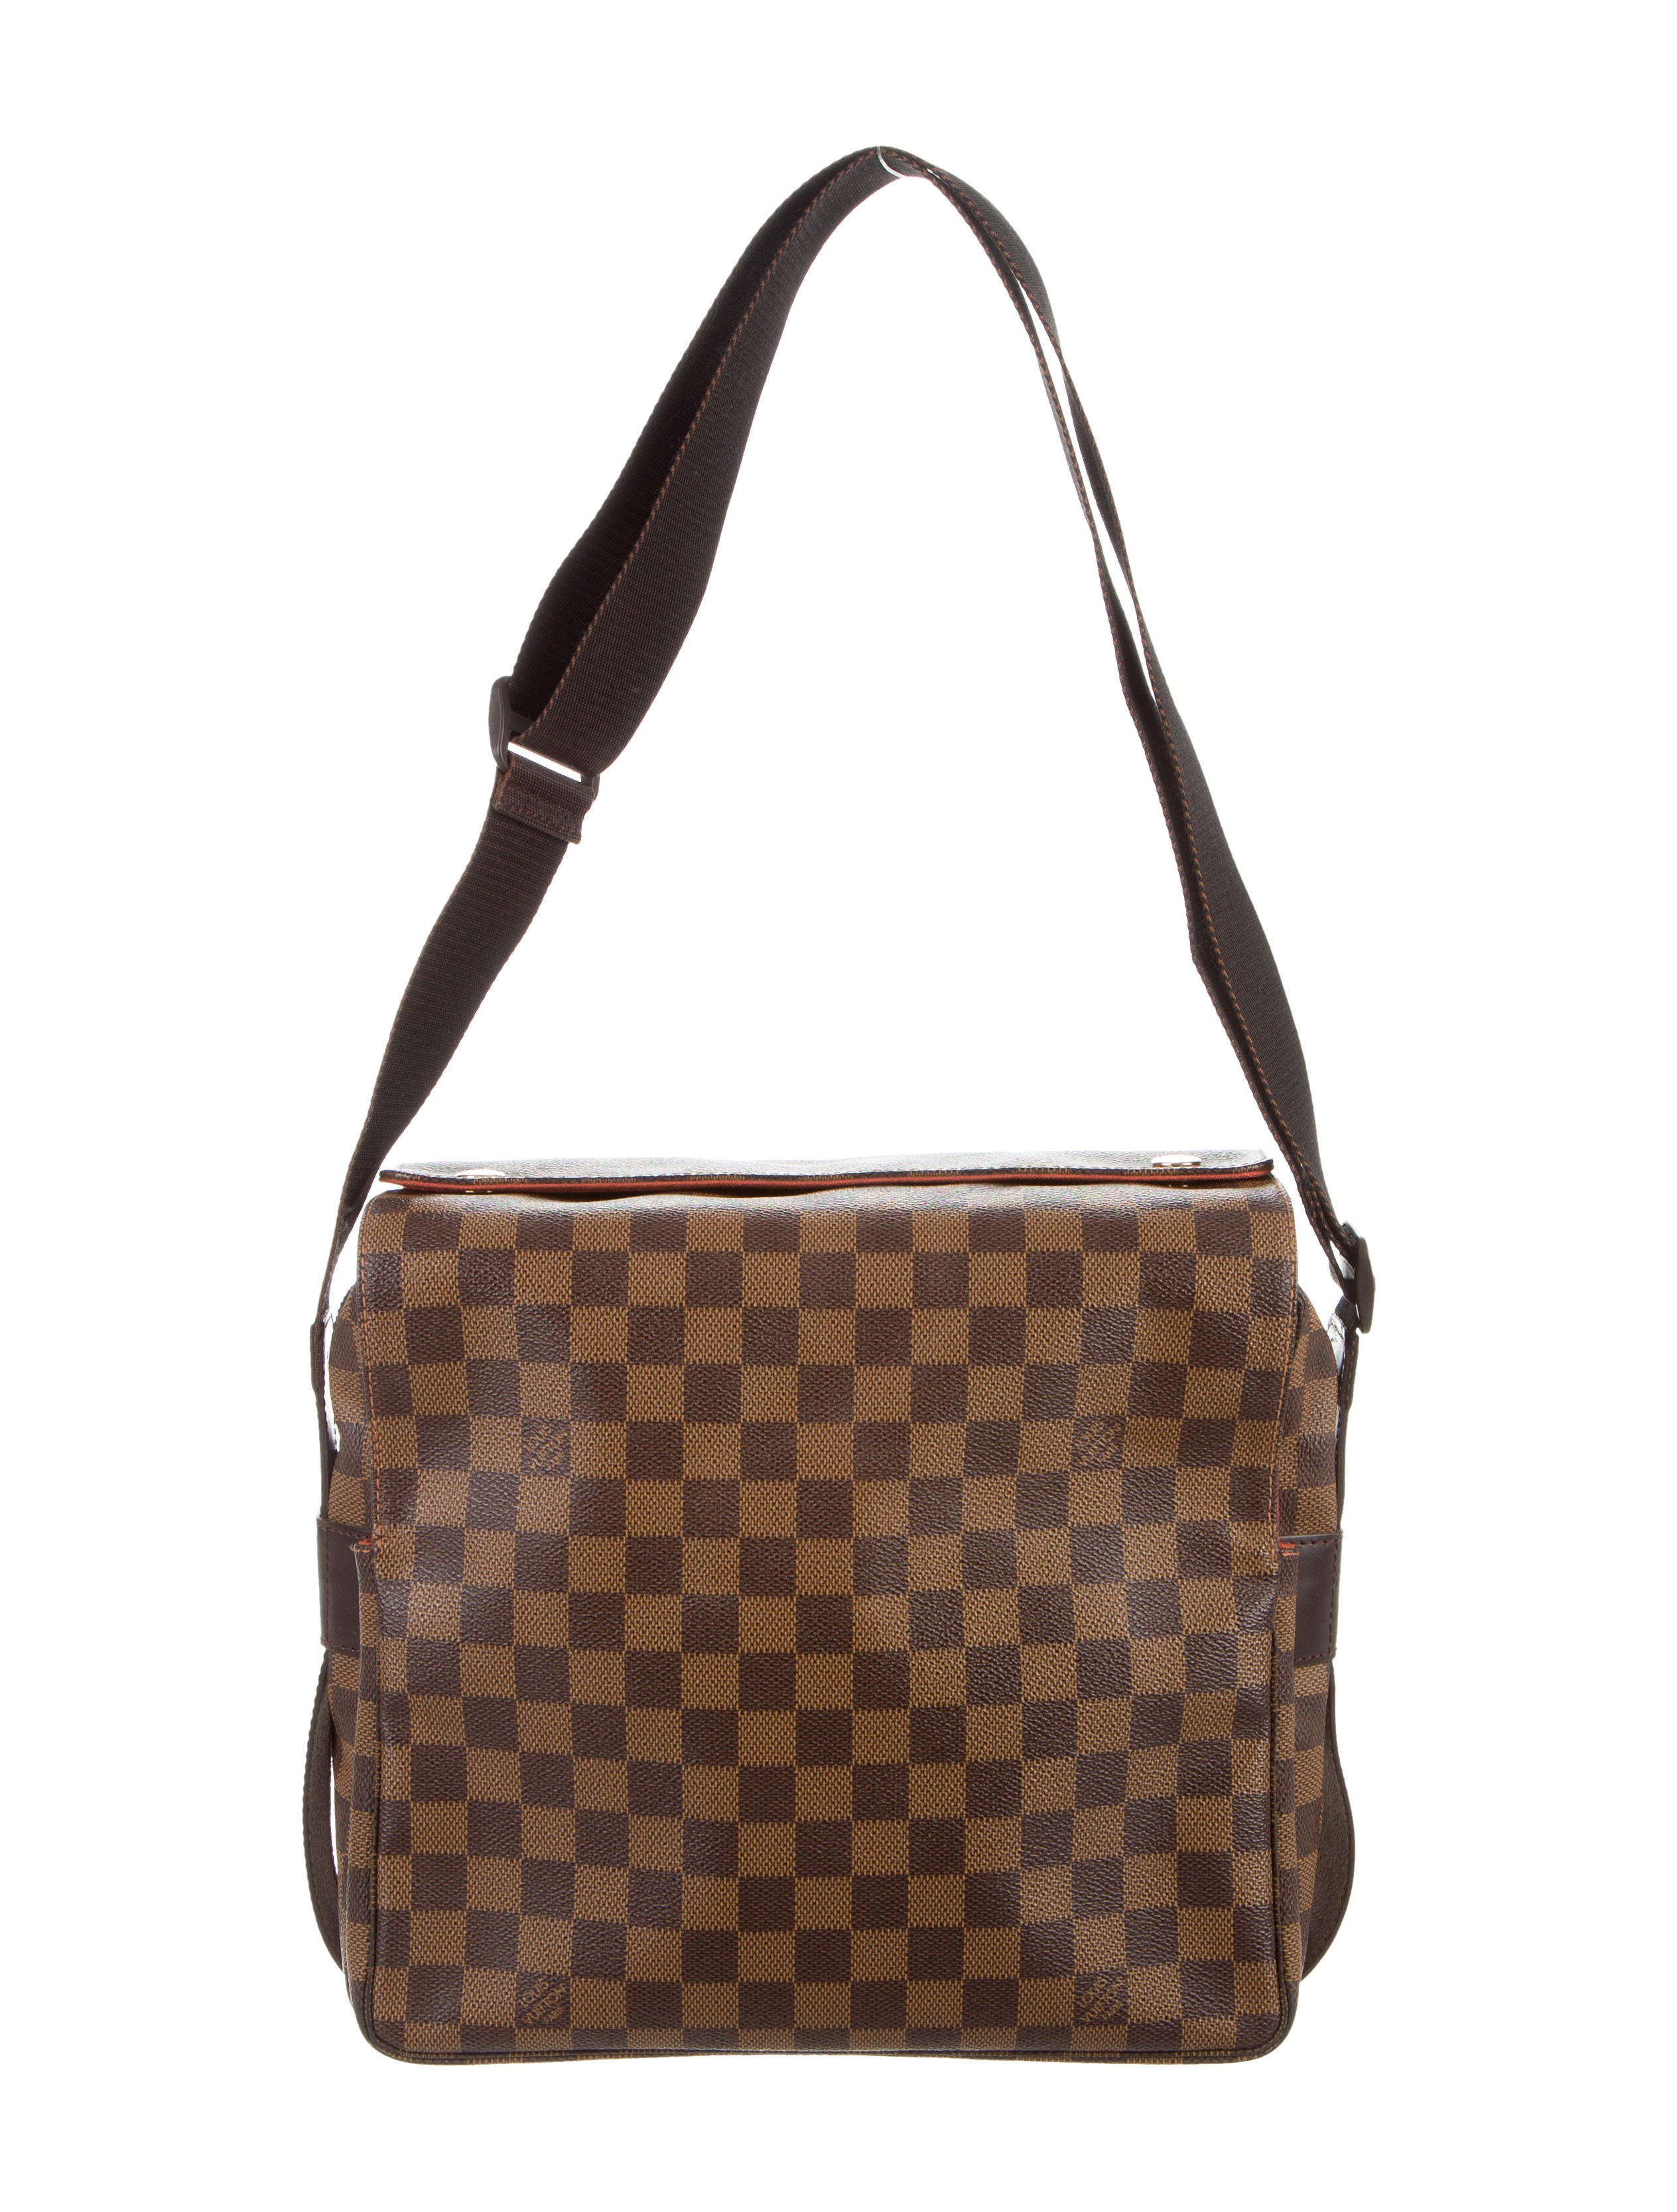 Original Louis Vuitton Bosphore Messenger Bag GM - Handbags - LOU115503 | The RealReal